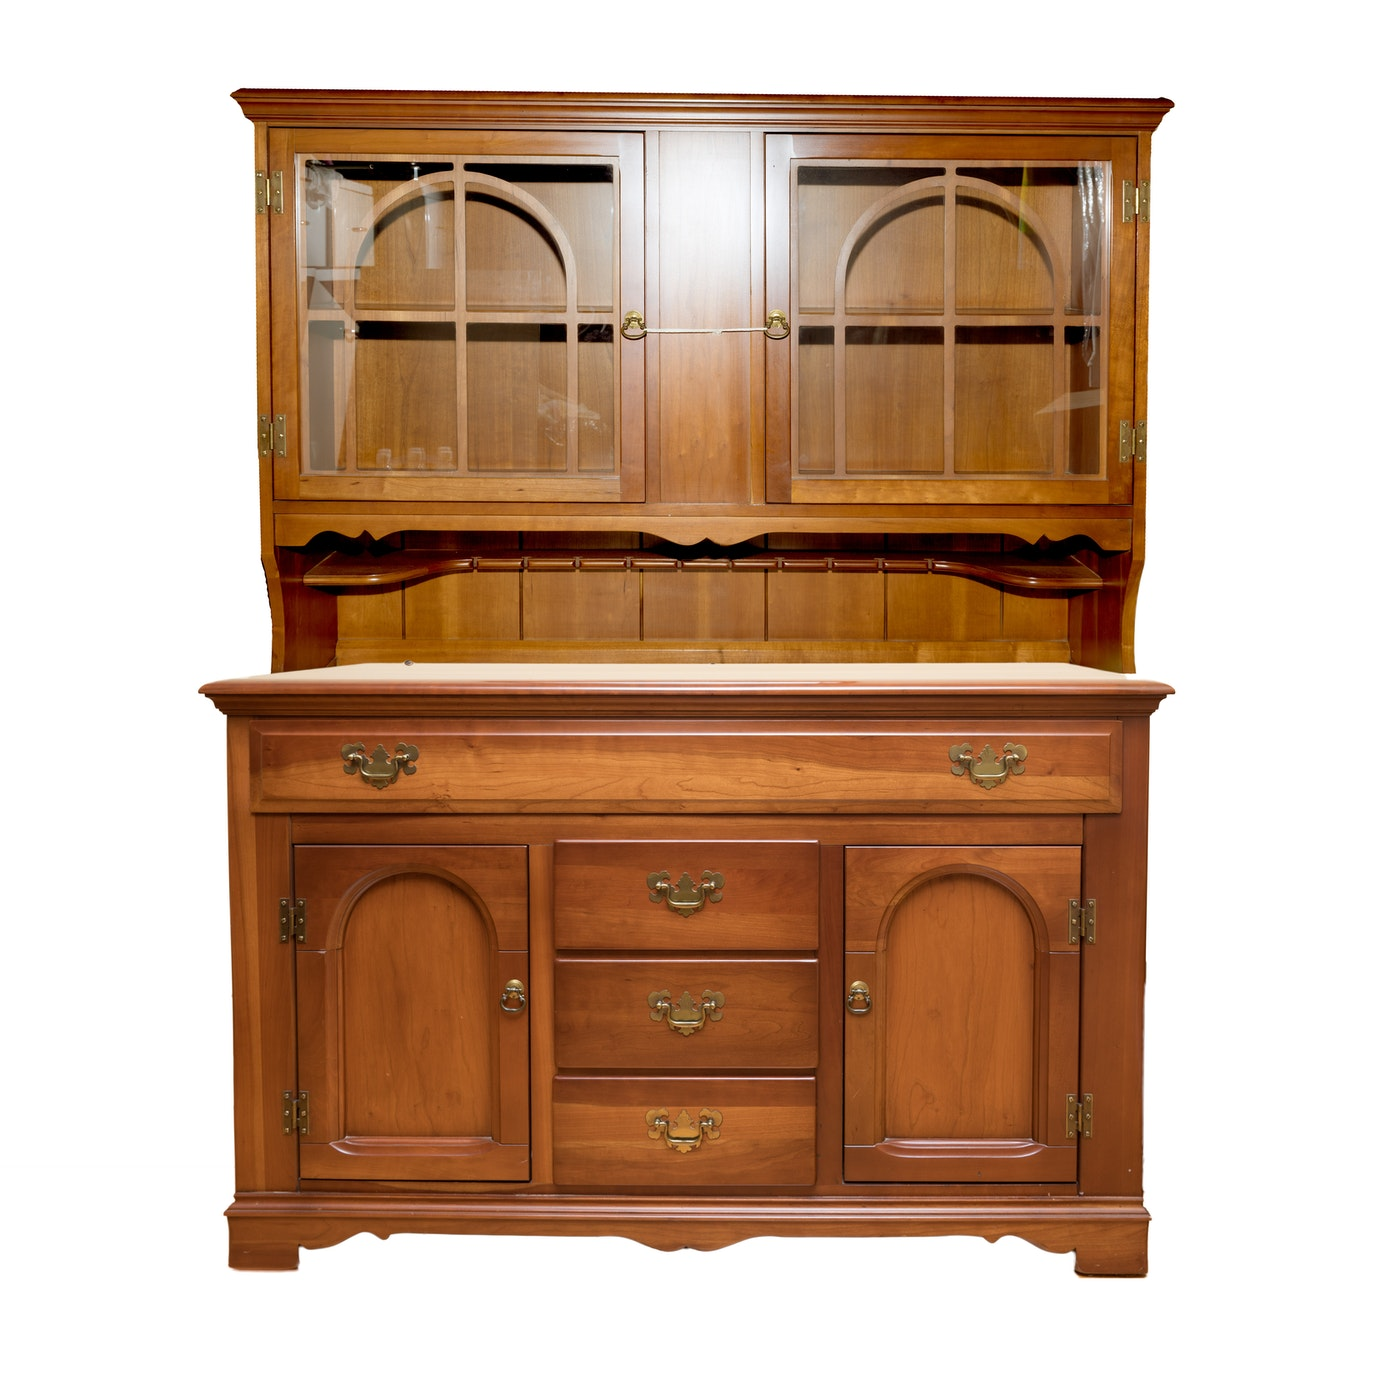 Empire Furniture Company Married Cherry Buffet